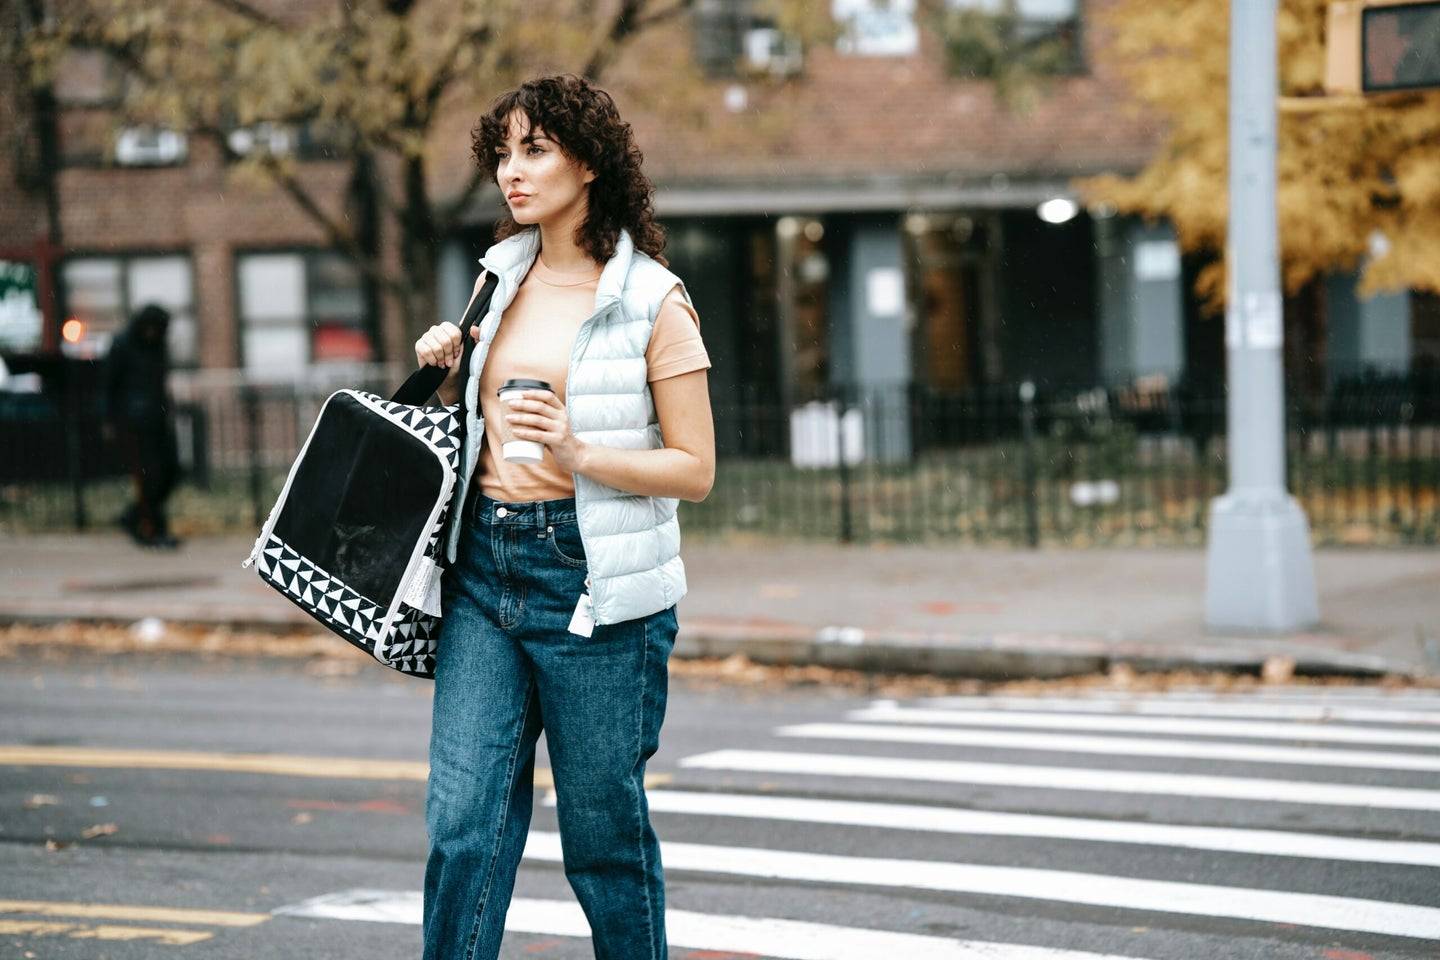 woman walking on street with a pet carrier